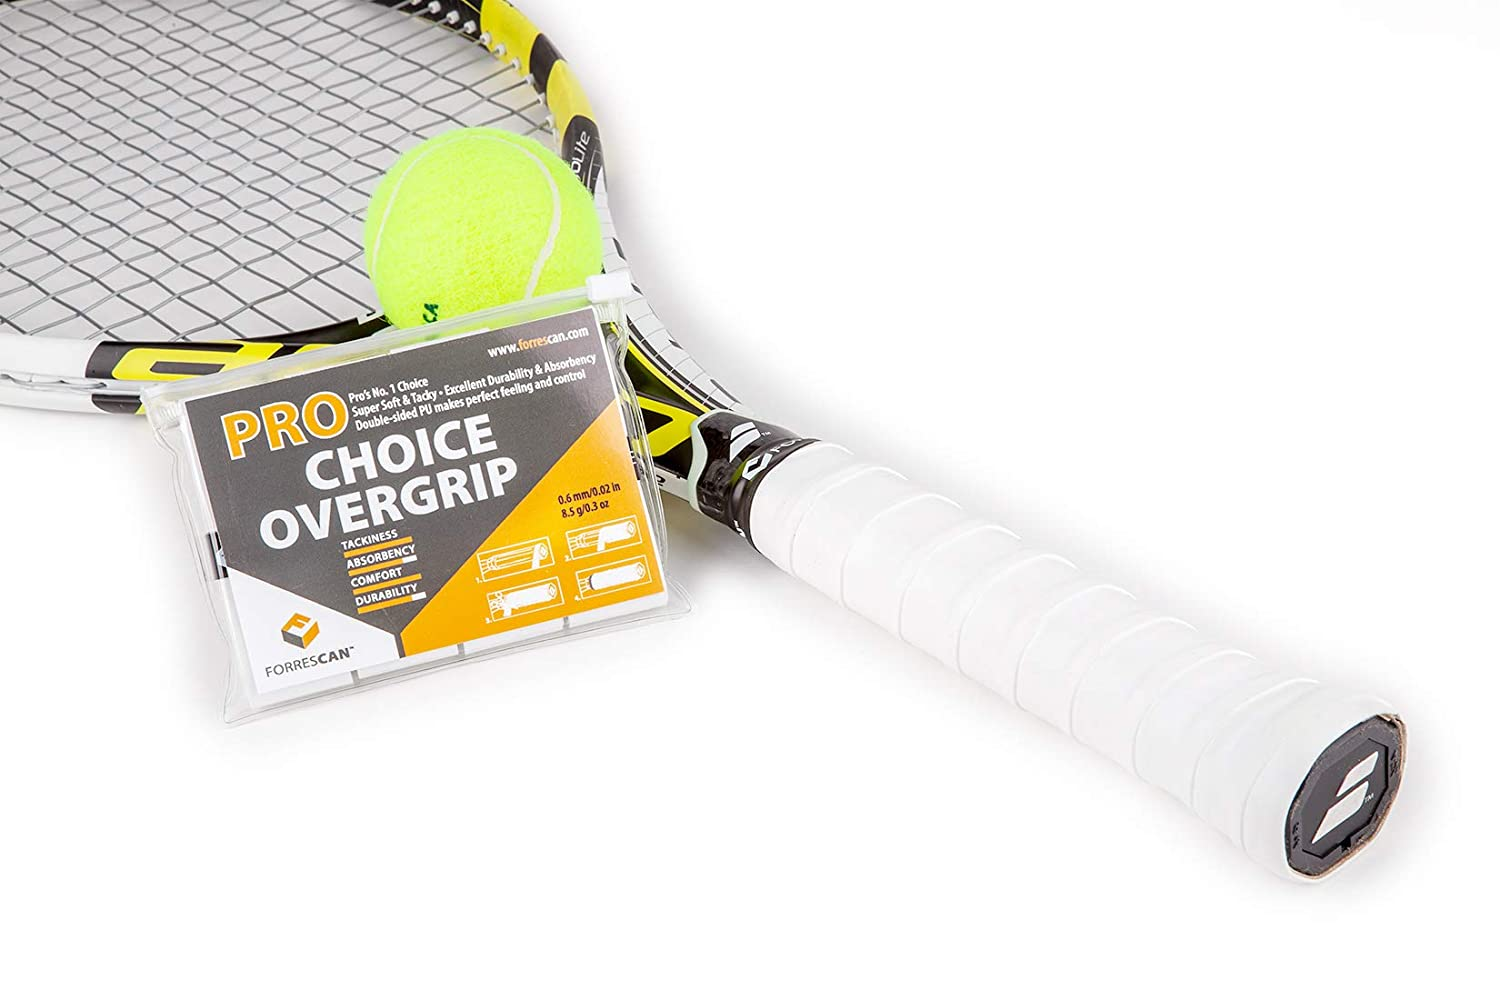 Amazon.com : ForresCAN Tennis Overgrip - Pro Choice - Tacky Super-Soft - Pack of 3, White Soft Anti-Slip : Sports & Outdoors